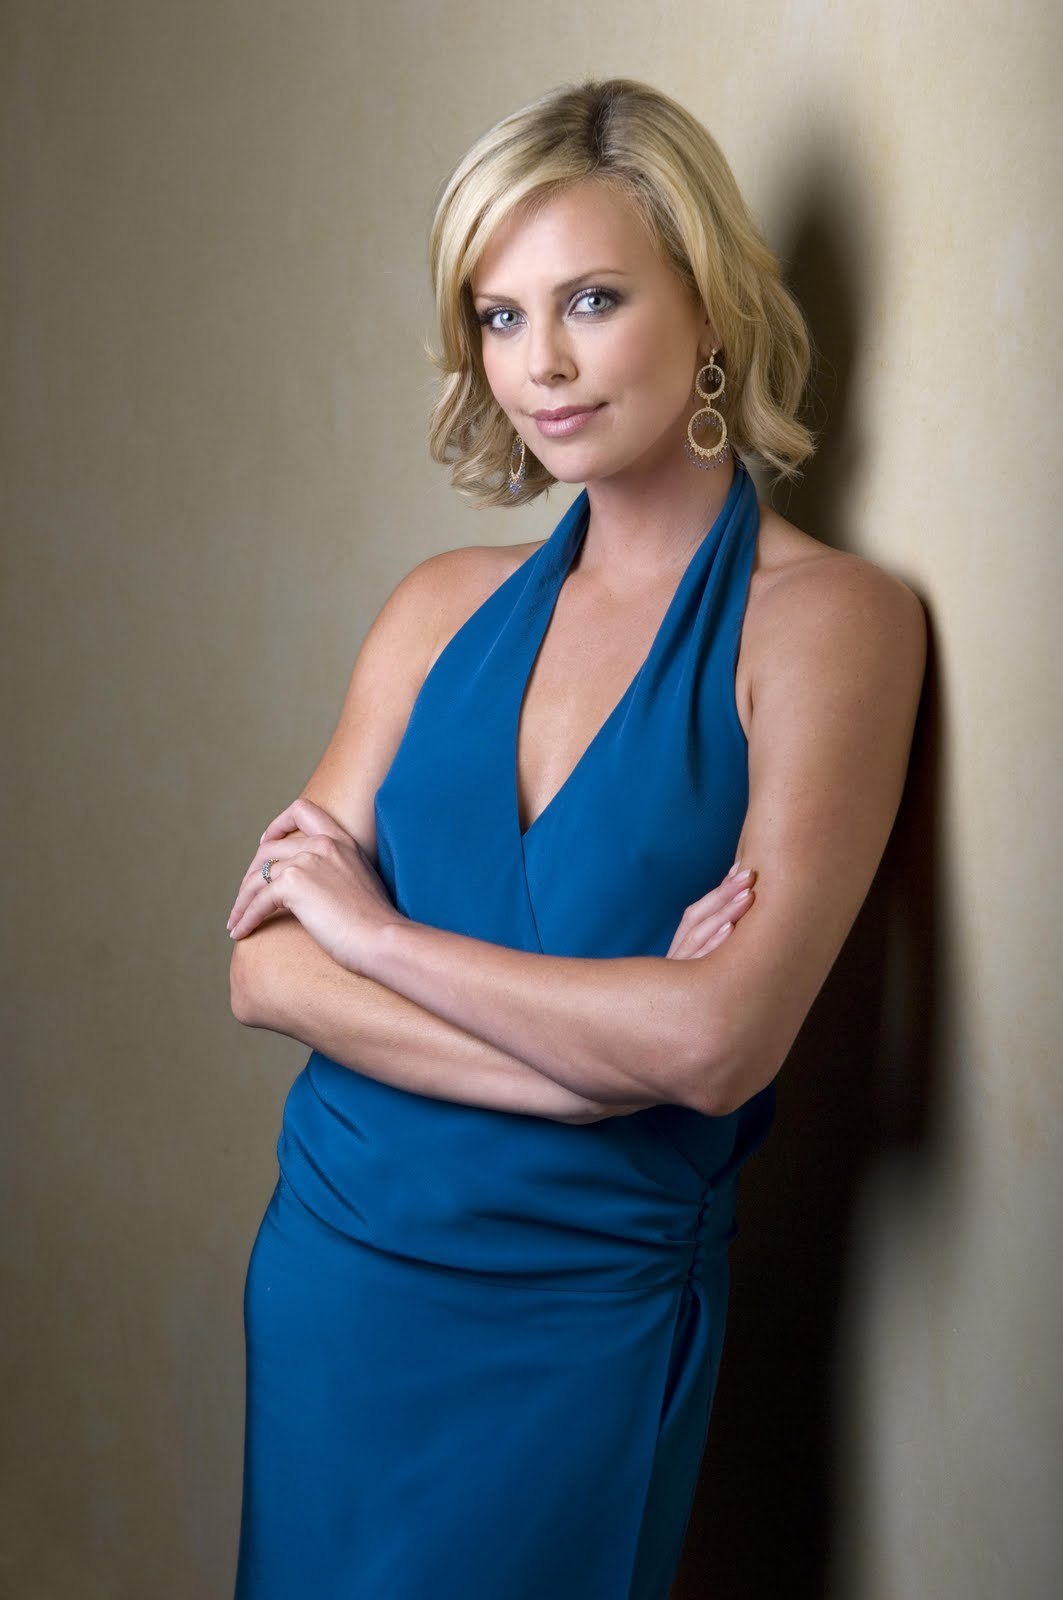 Charlize Theron In Versace For British Vogue: Celebrity Wallpapers: Charlize Theron HD Wallpapers